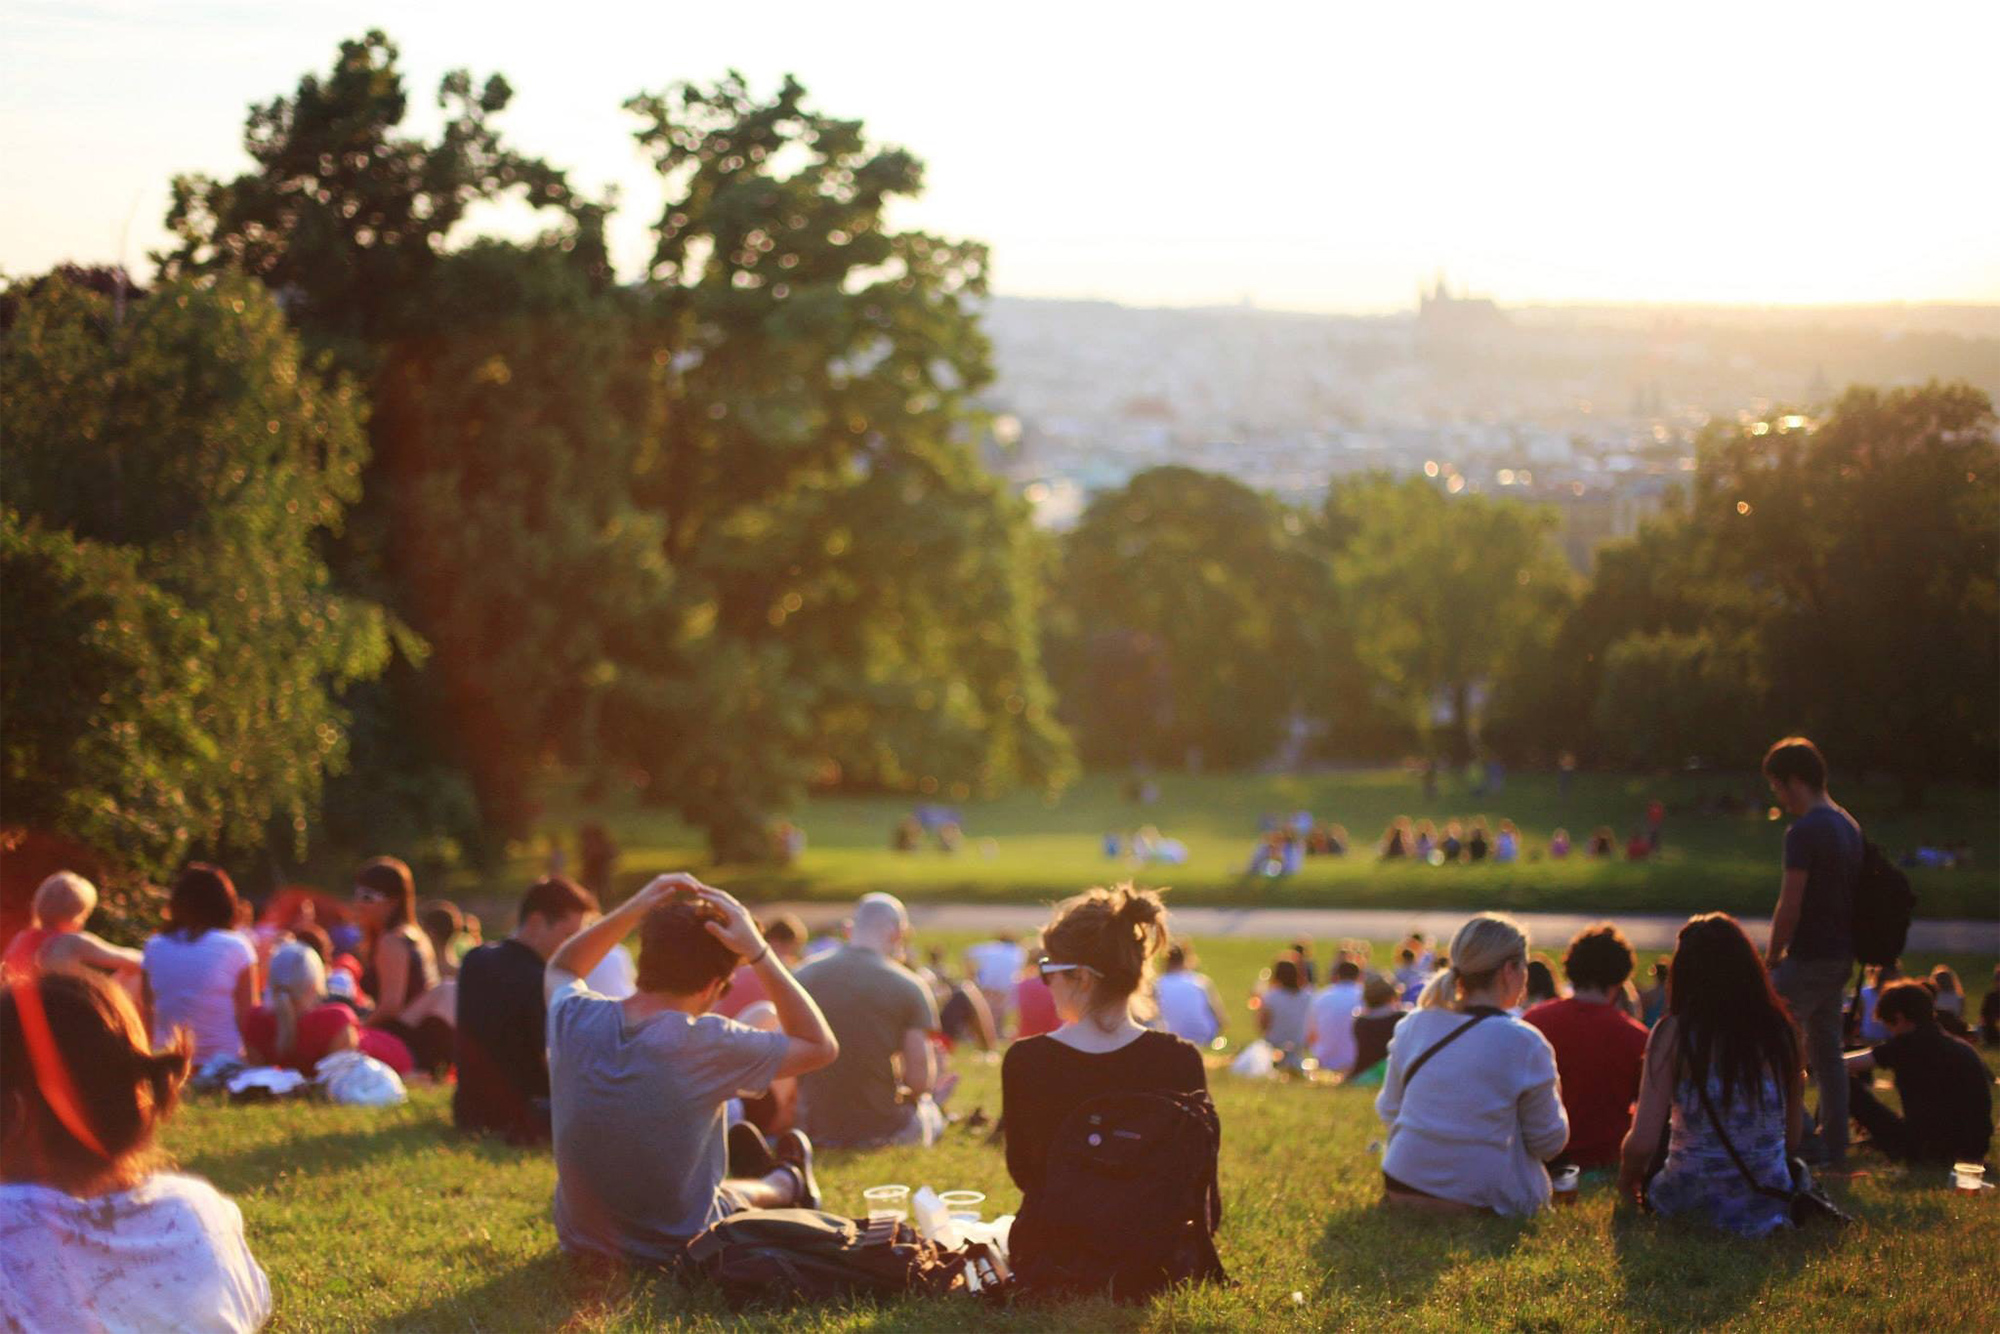 scenic view of picnic goers in a park